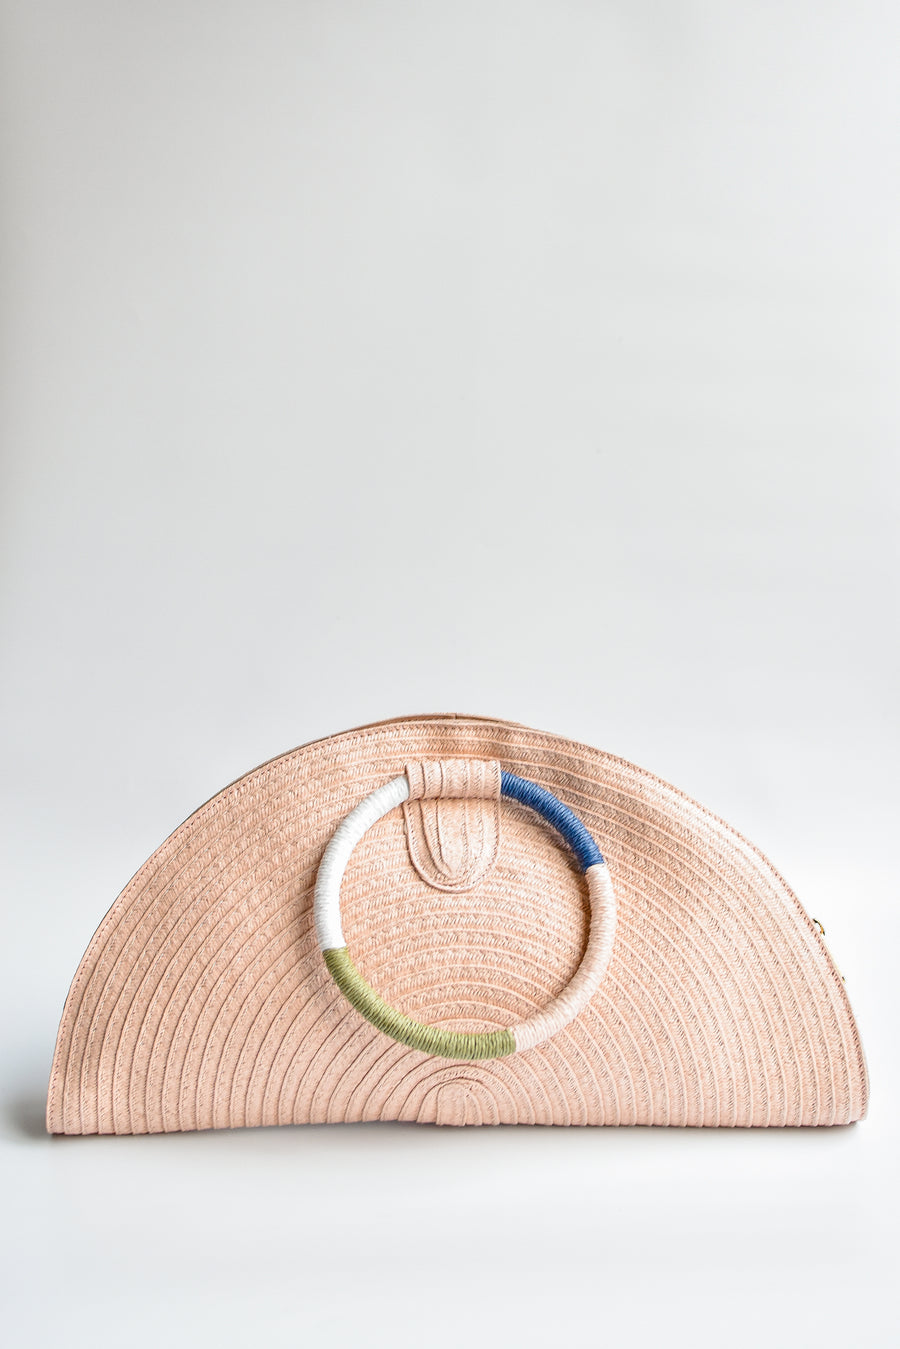 Pink half-moon straw clutch with colorful wrapped circle handle and leather sides..